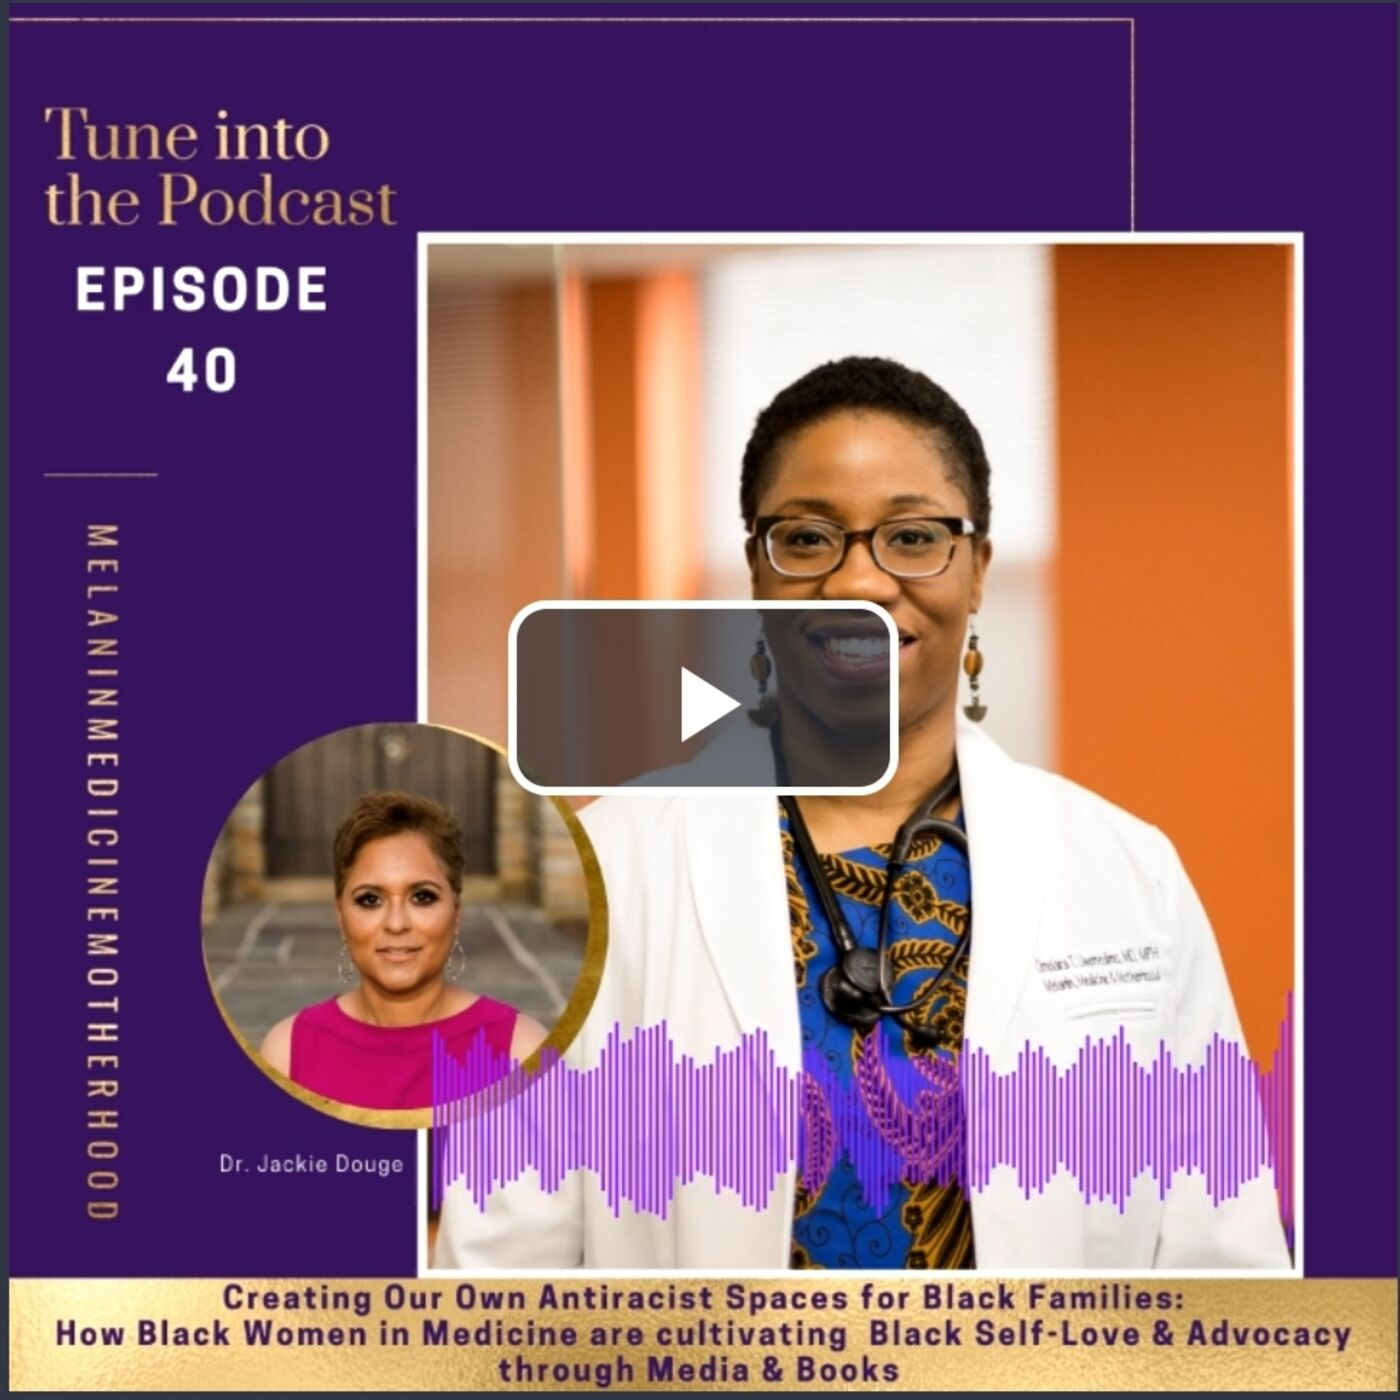 Creating Our Own Antiracist Spaces for Black Families: How Black Women in Medicine are cultivating  Black Self-Love & Advocacy through Media & Books (with Dr. Jackie Douge)